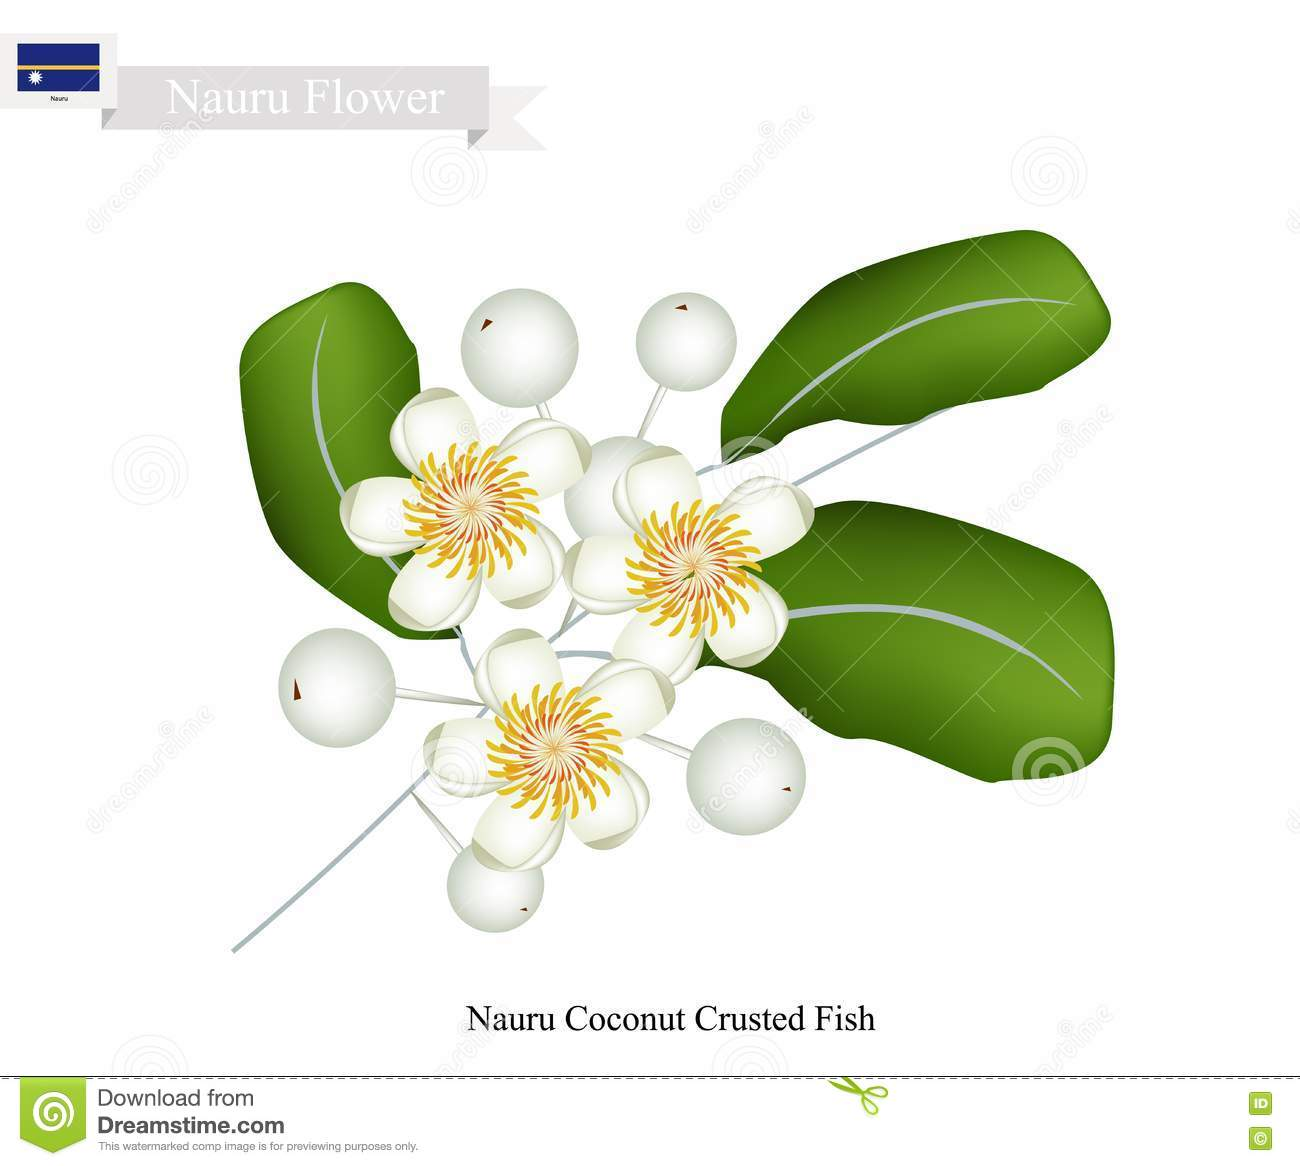 Calophyllum Inophyllum, A Common Flower In Nauru Stock Vector.